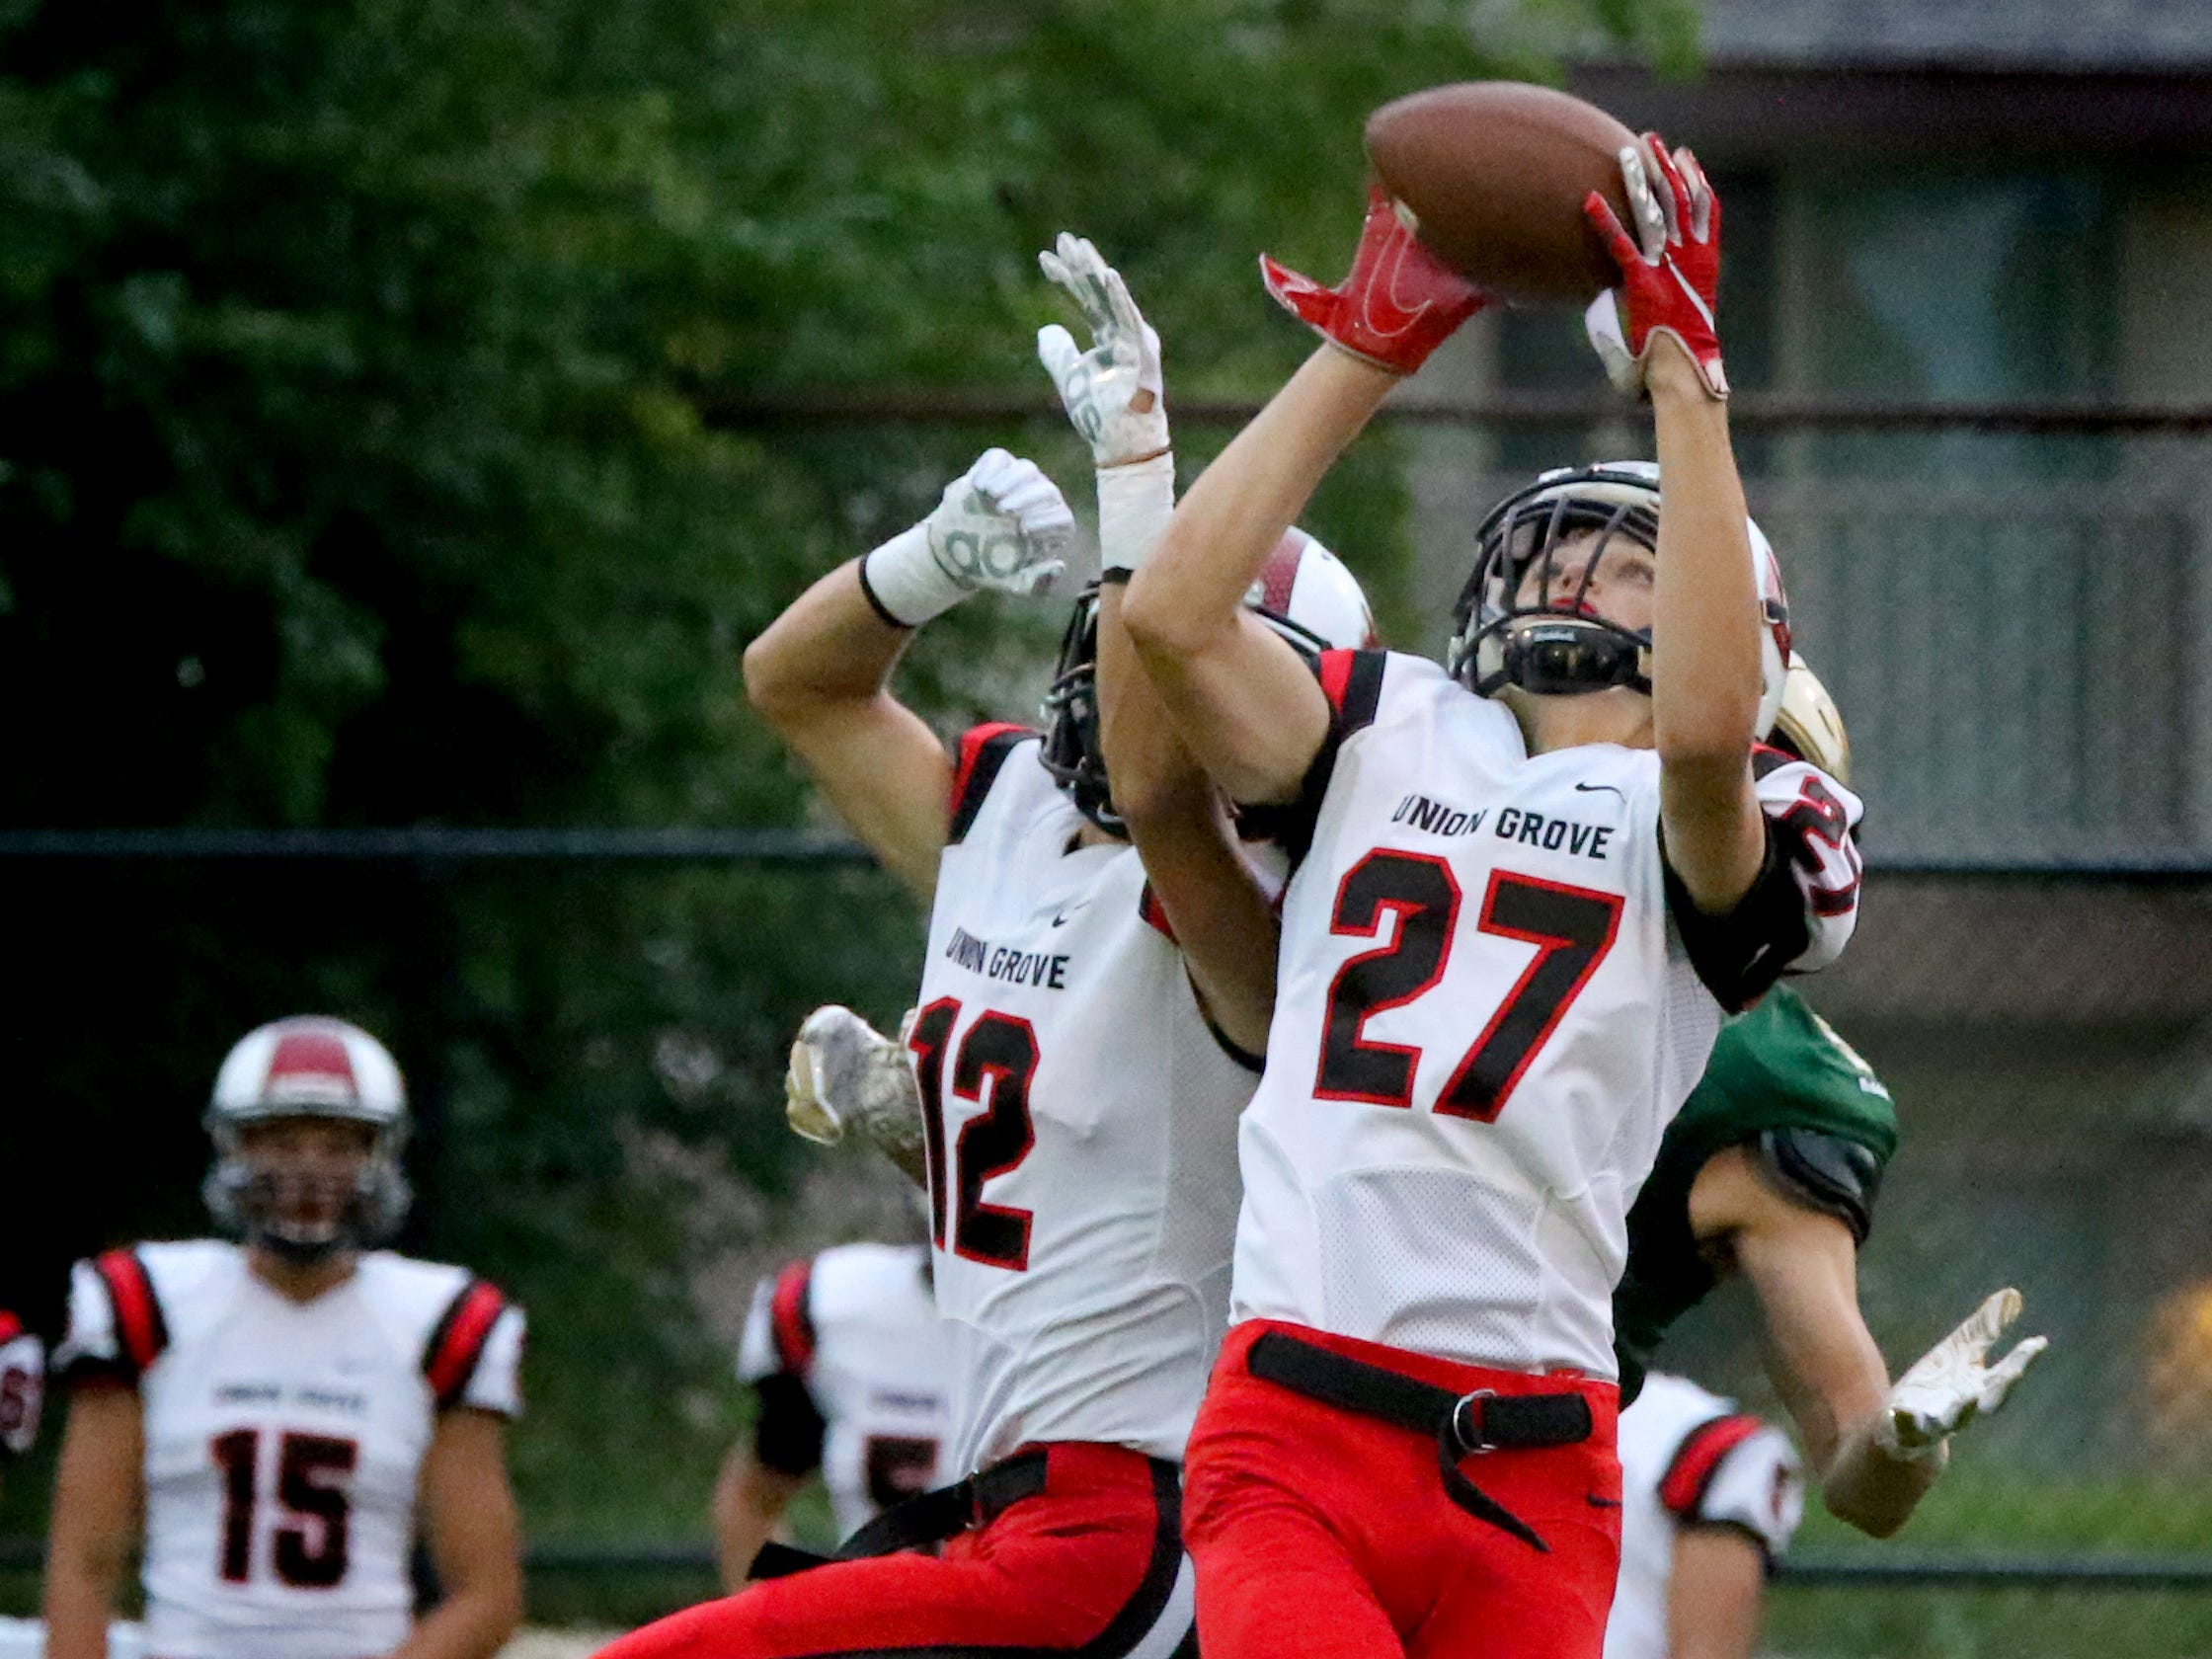 Union Grove's Tommy Hempl makes an interception against Greenfield's Chris Lopez at Greeenfield on Aug. 16.